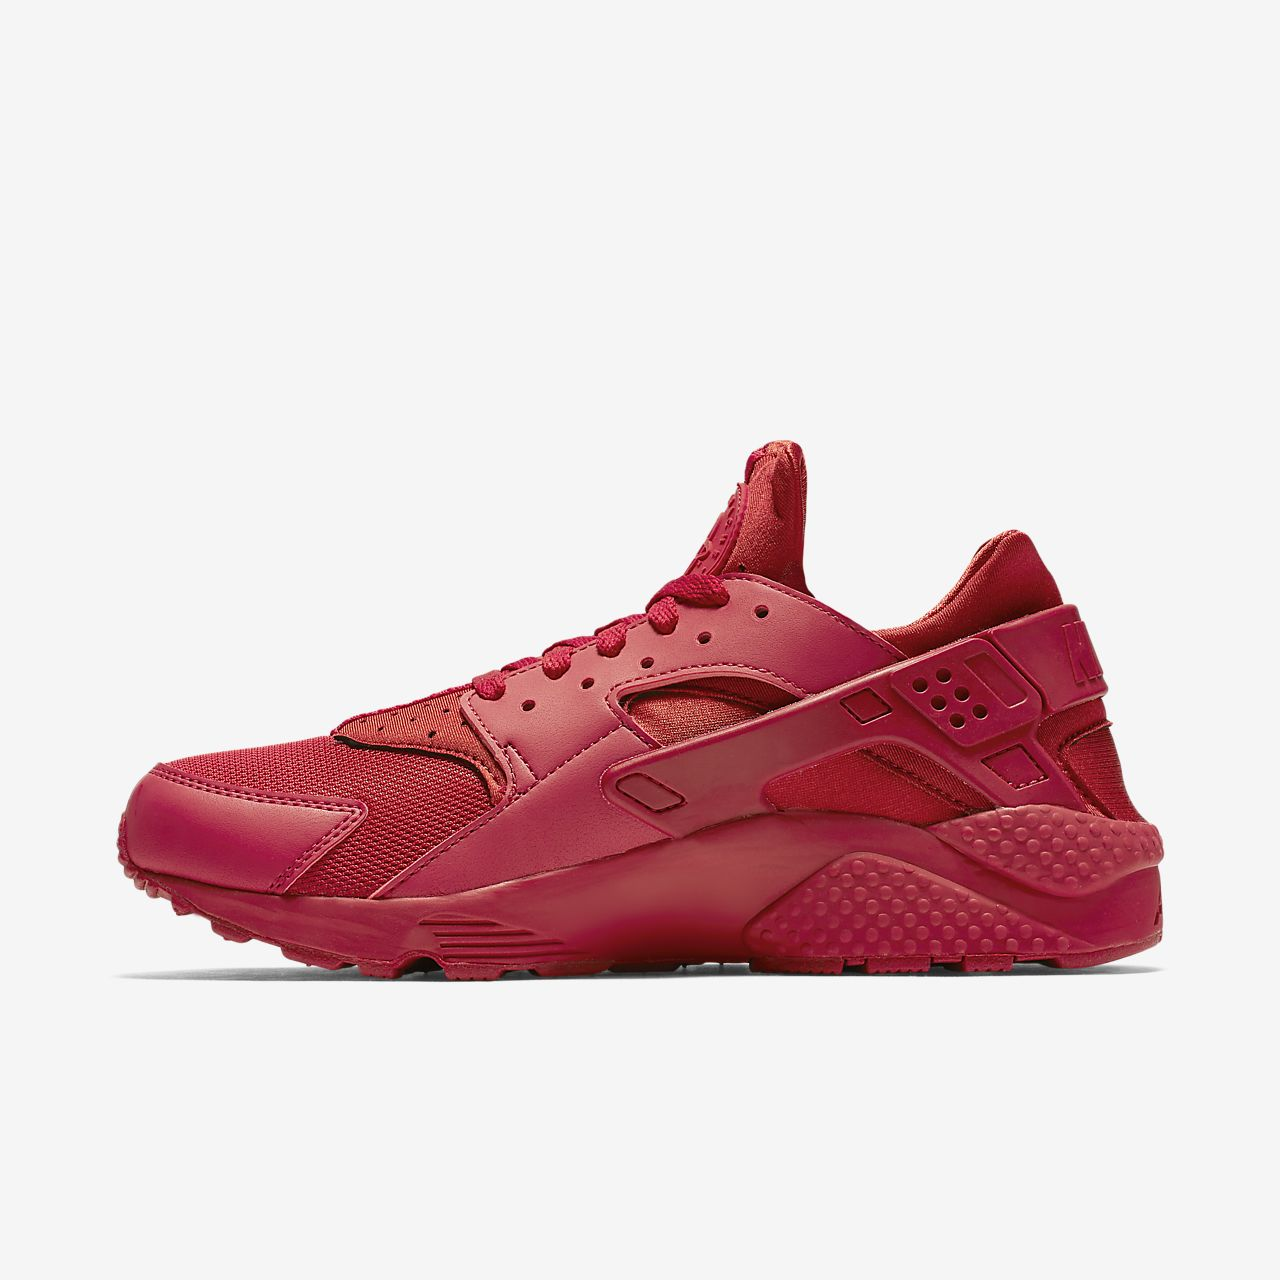 new product 8bc87 48463 ... Nike Air Huarache Men s Shoe